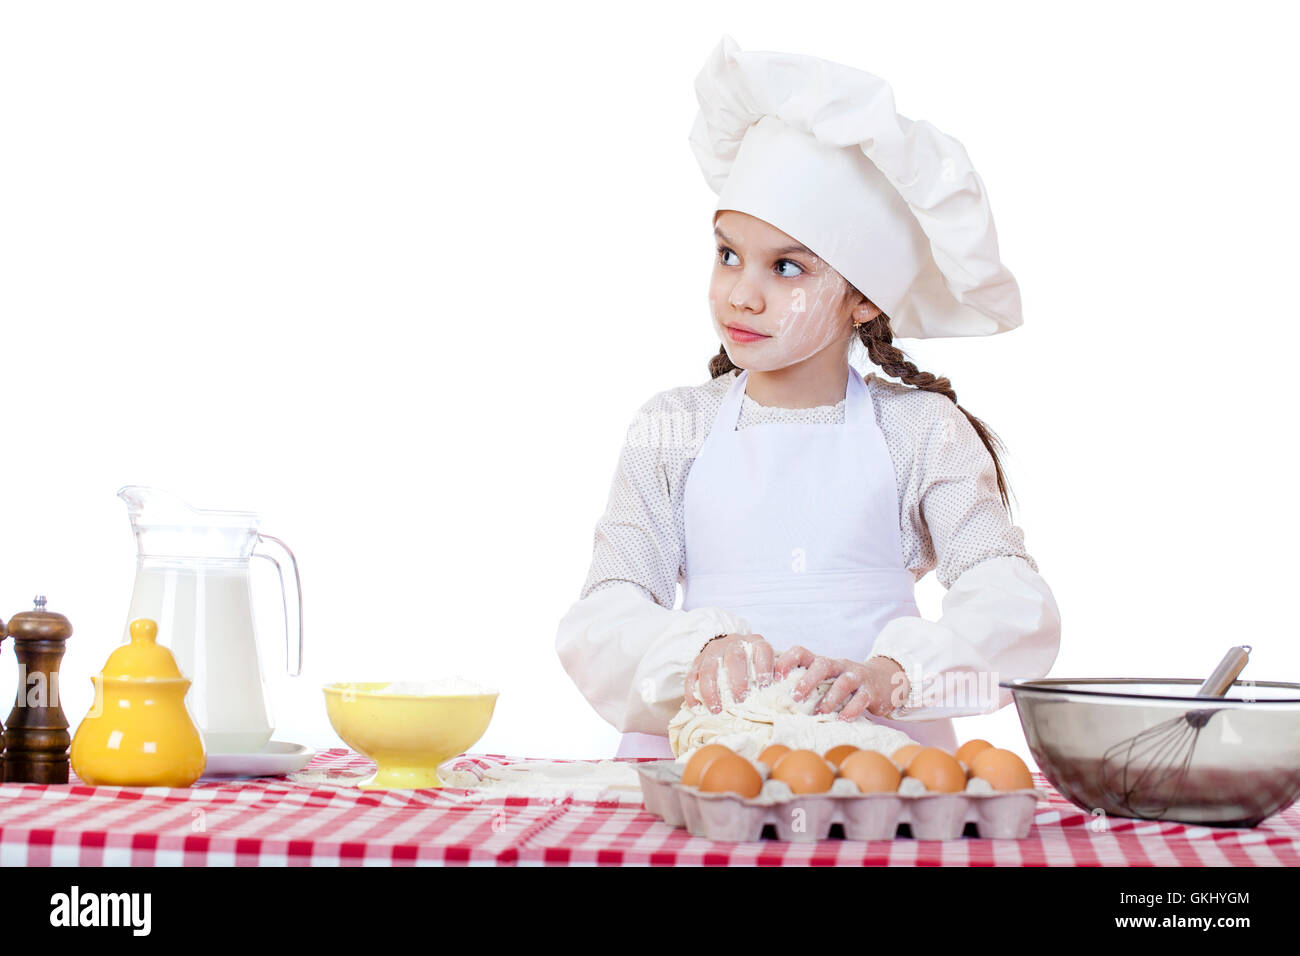 White apron and hat - Portrait Of A Little Girl In A White Apron And Chefs Hat Knead The Dough In The Kitchen Isolated On A White Background